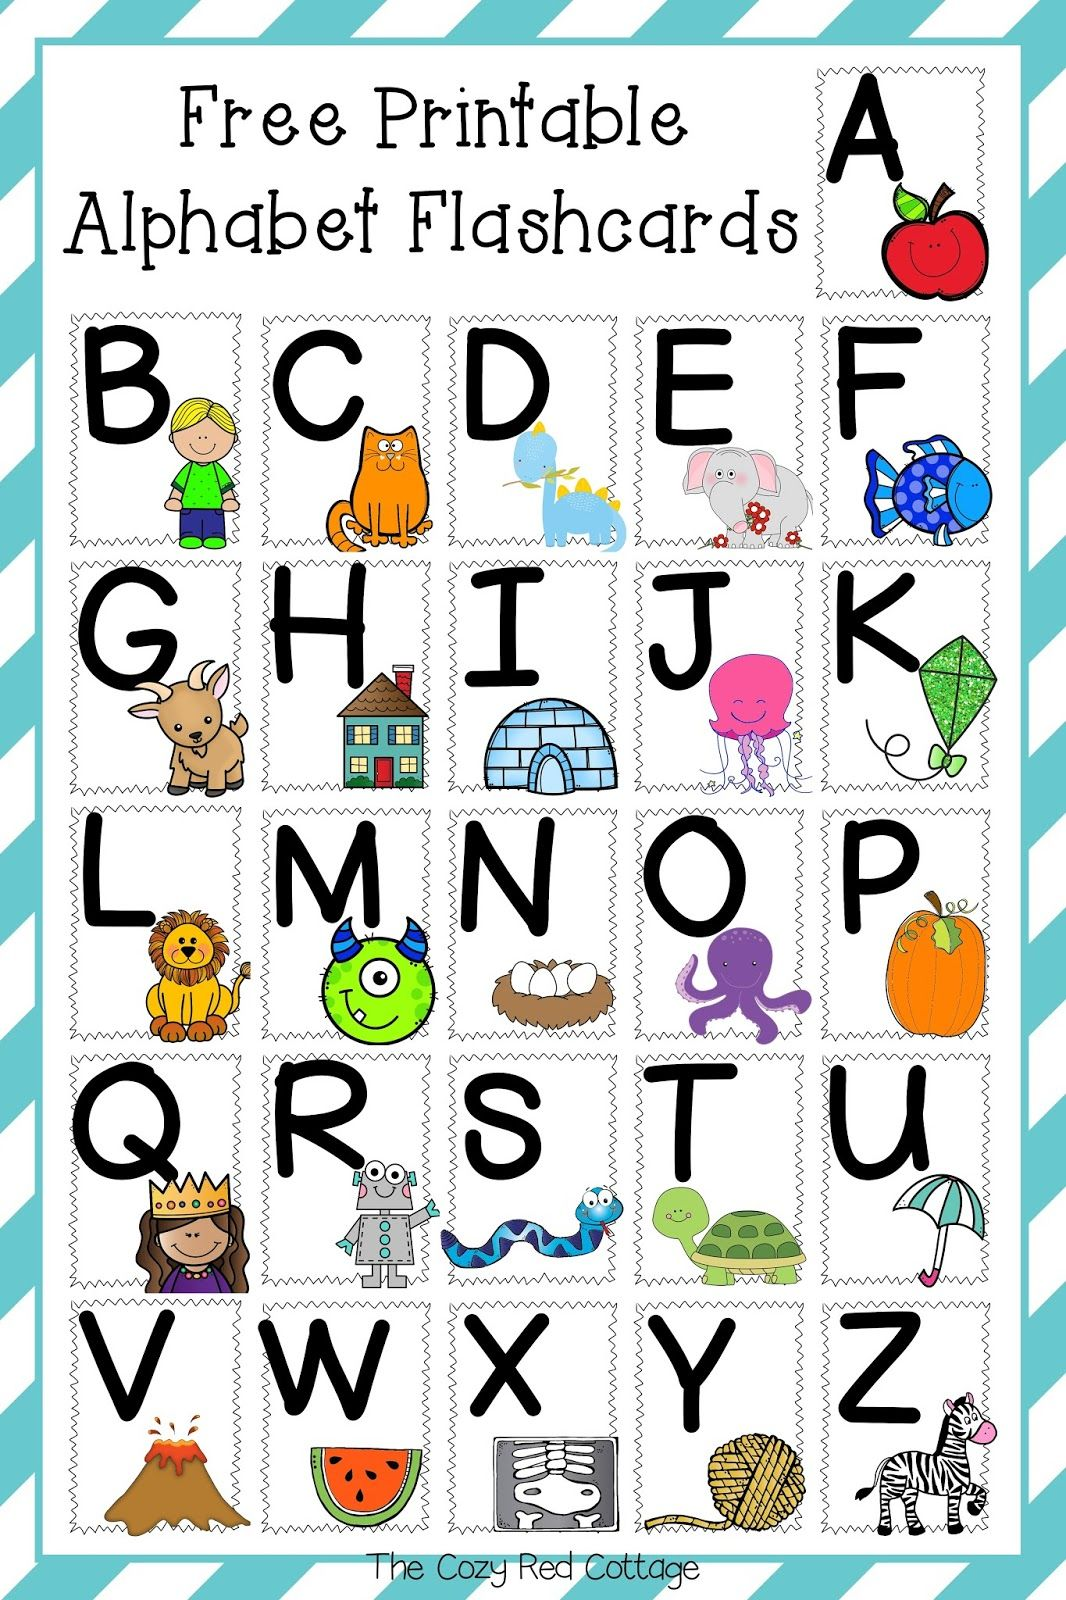 Free Printable Alphabet Flashcards With Images